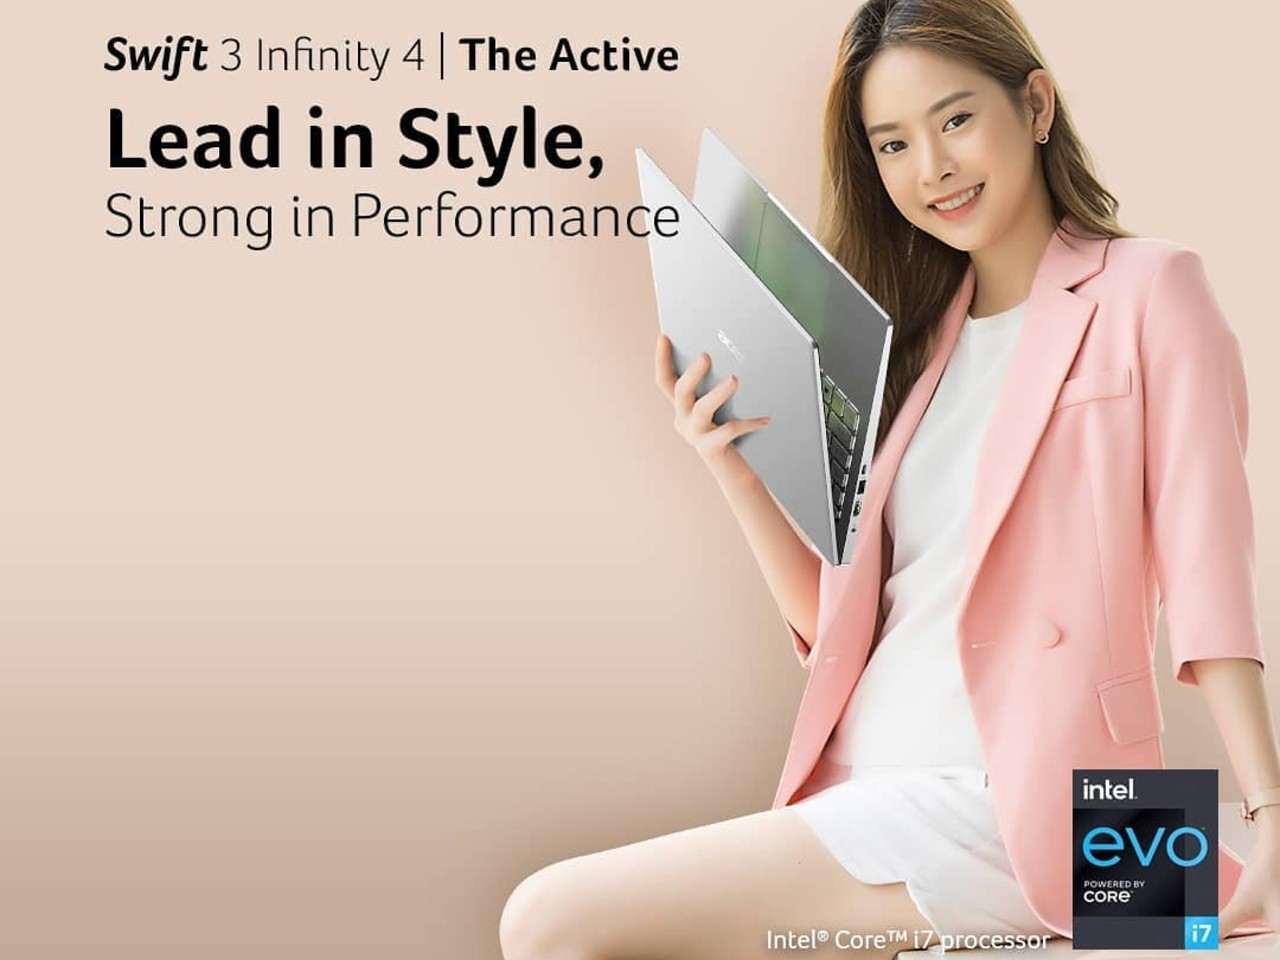 Acer-Swift-3-Infinity-4-Feature